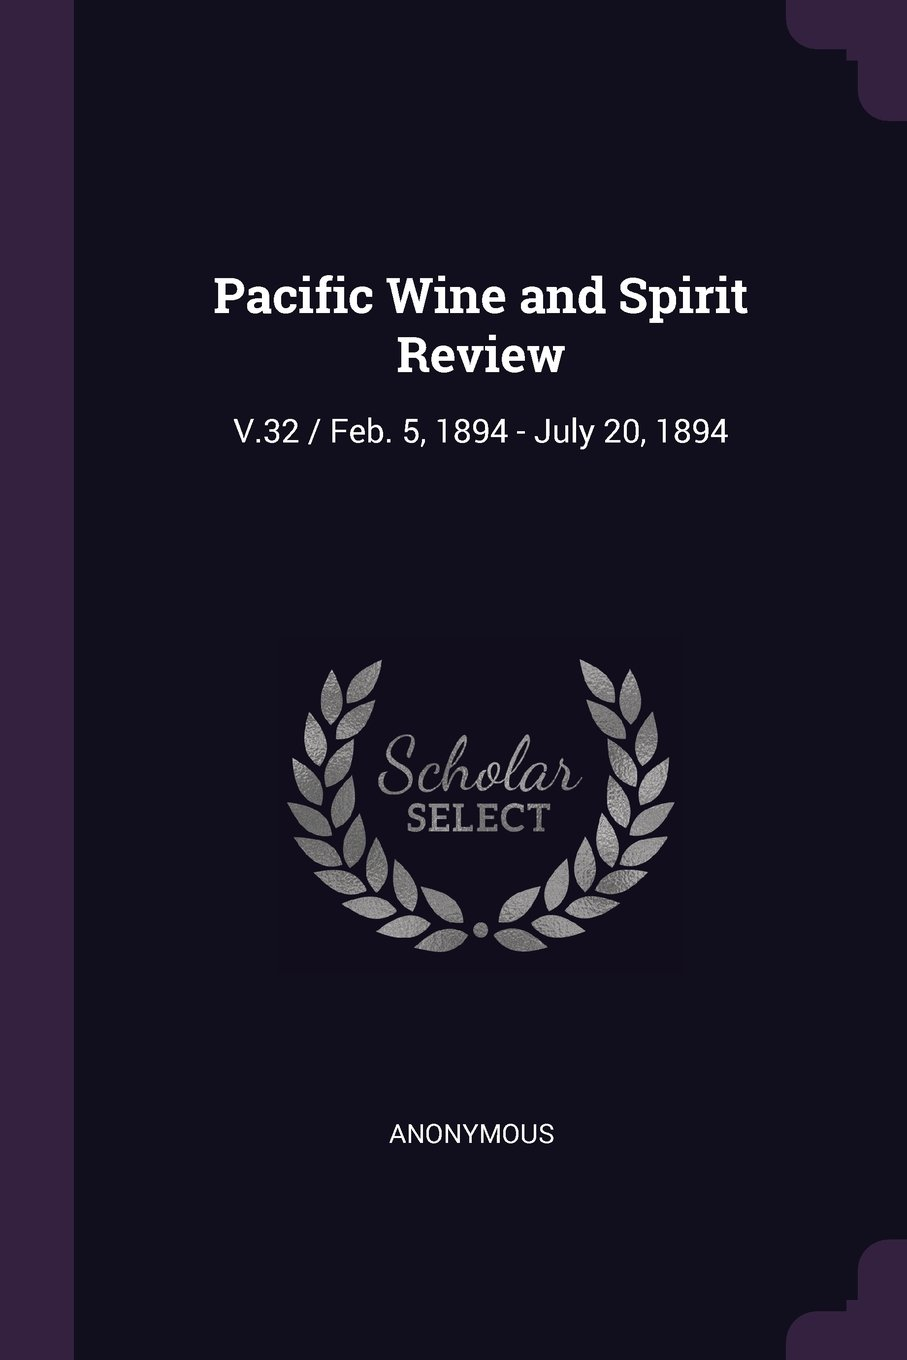 Pacific Wine and Spirit Review: V.32 / Feb. 5, 1894 - July 20, 1894 ebook